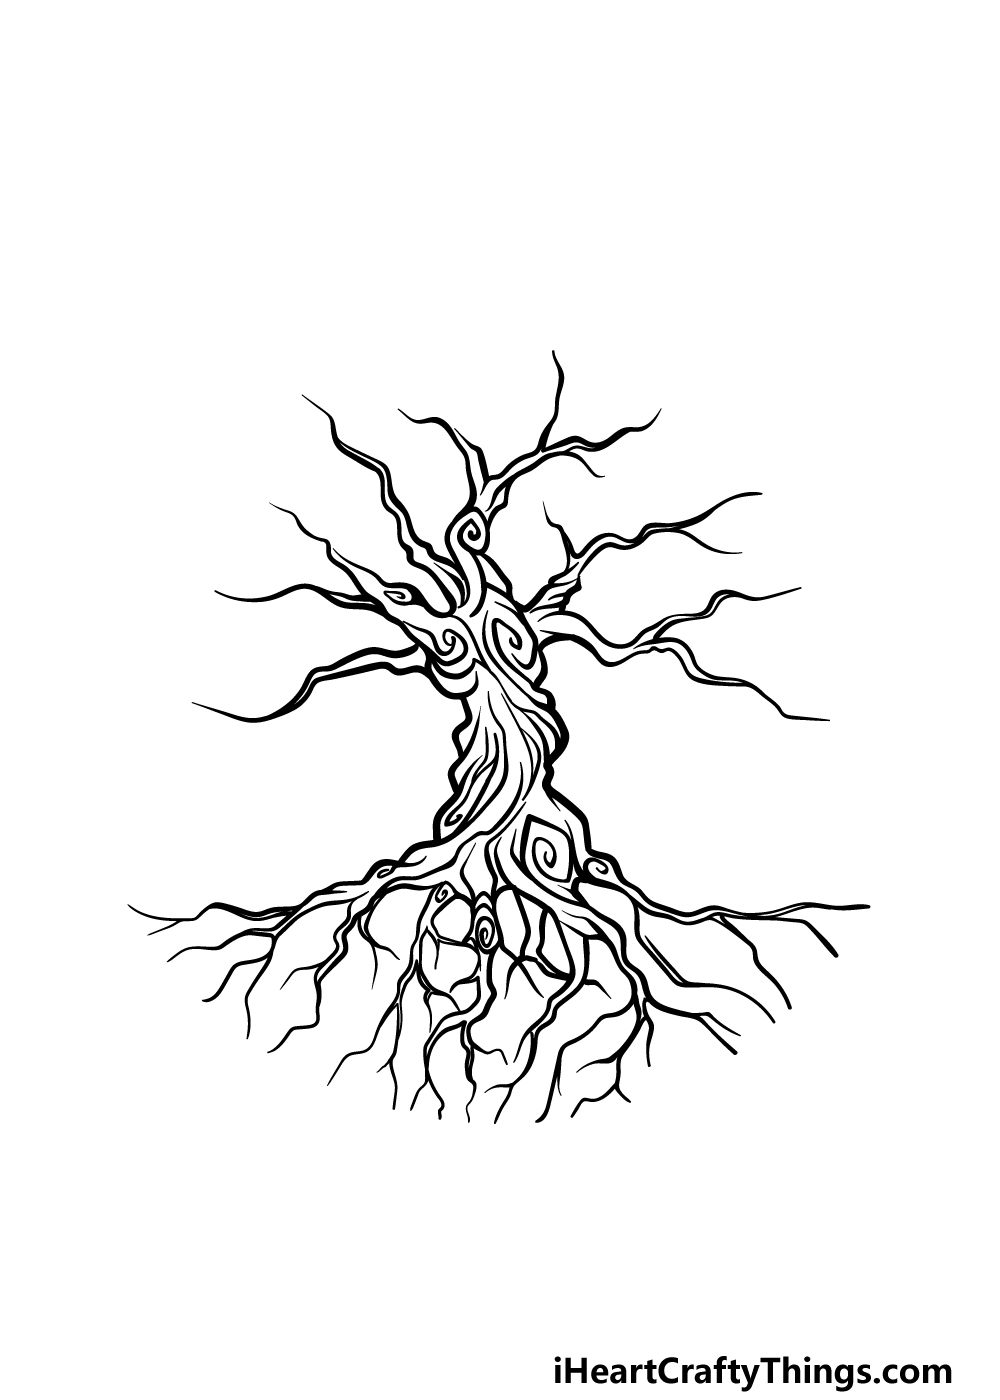 drawing the tree of life step 3